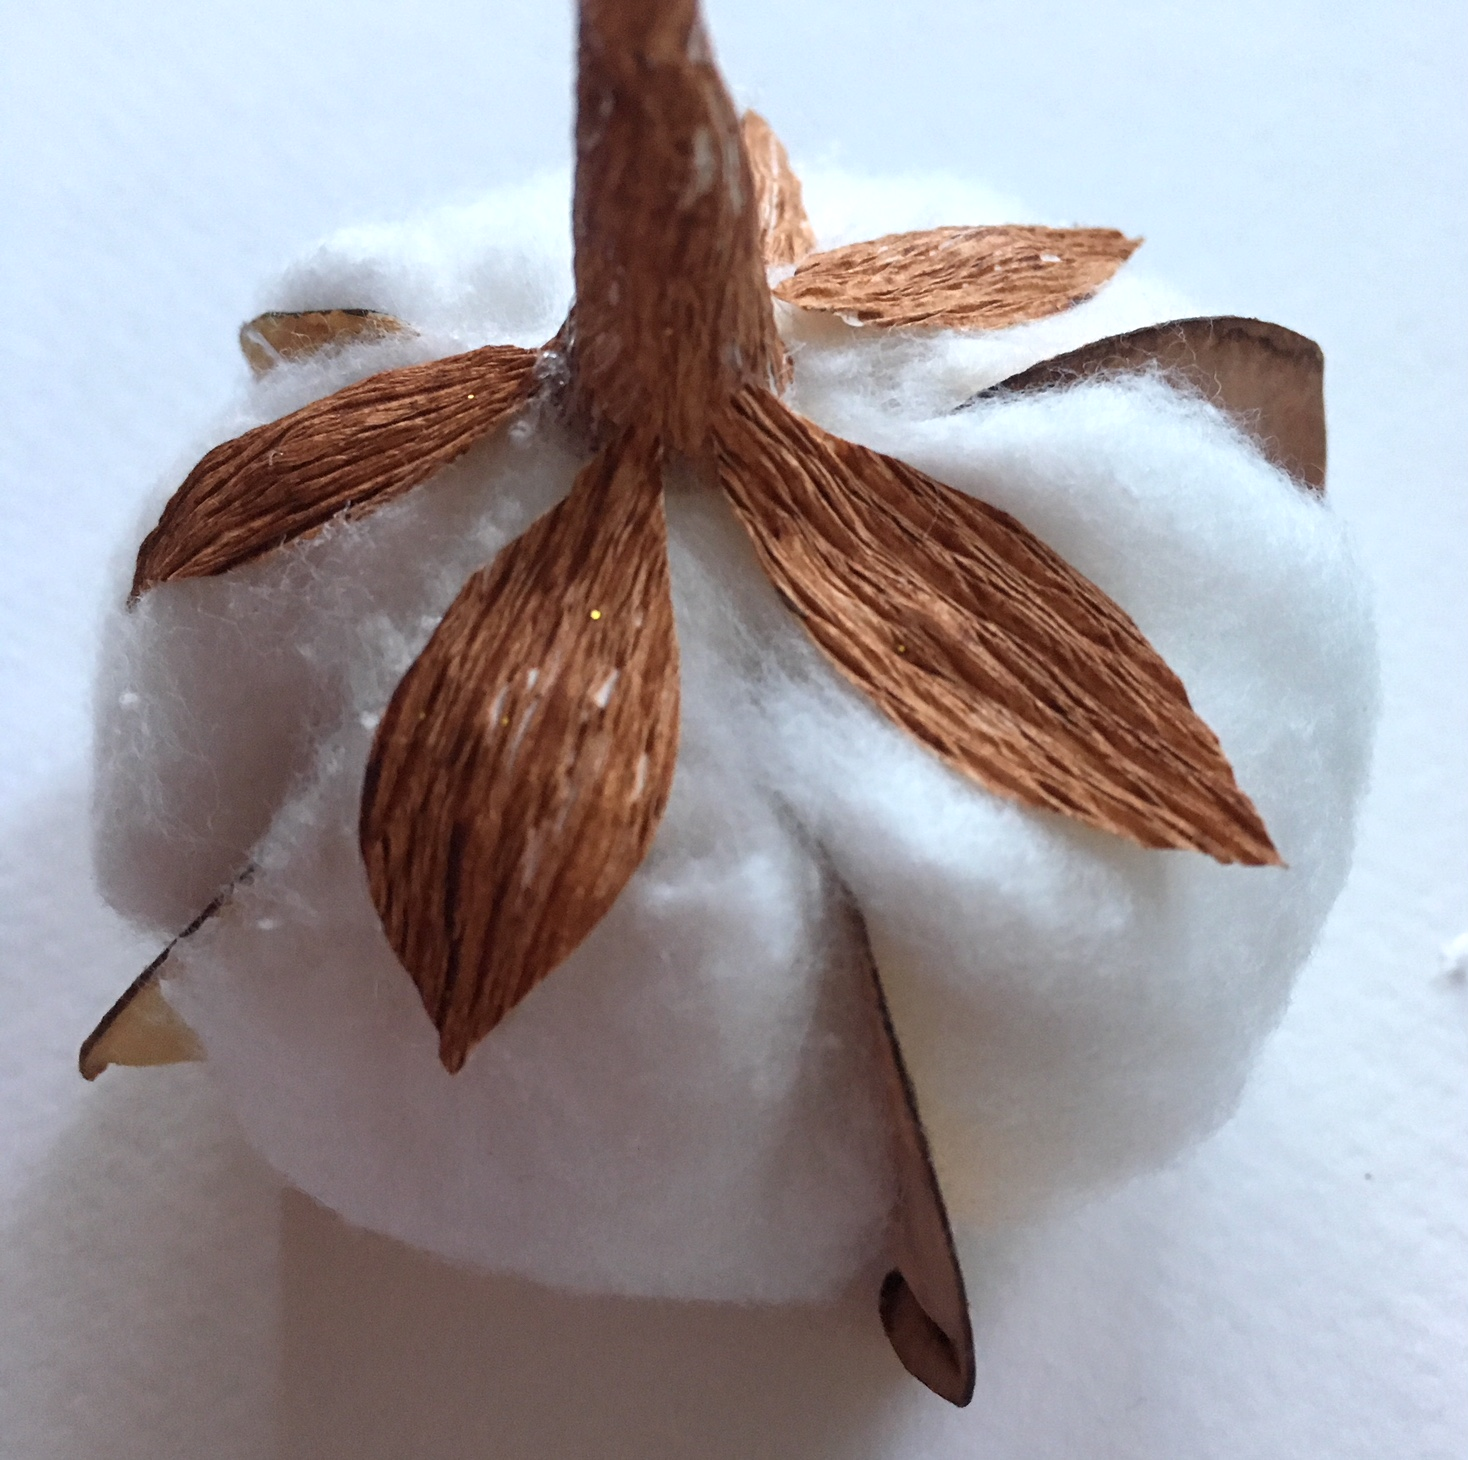 little brown leaves glued on the white cotton